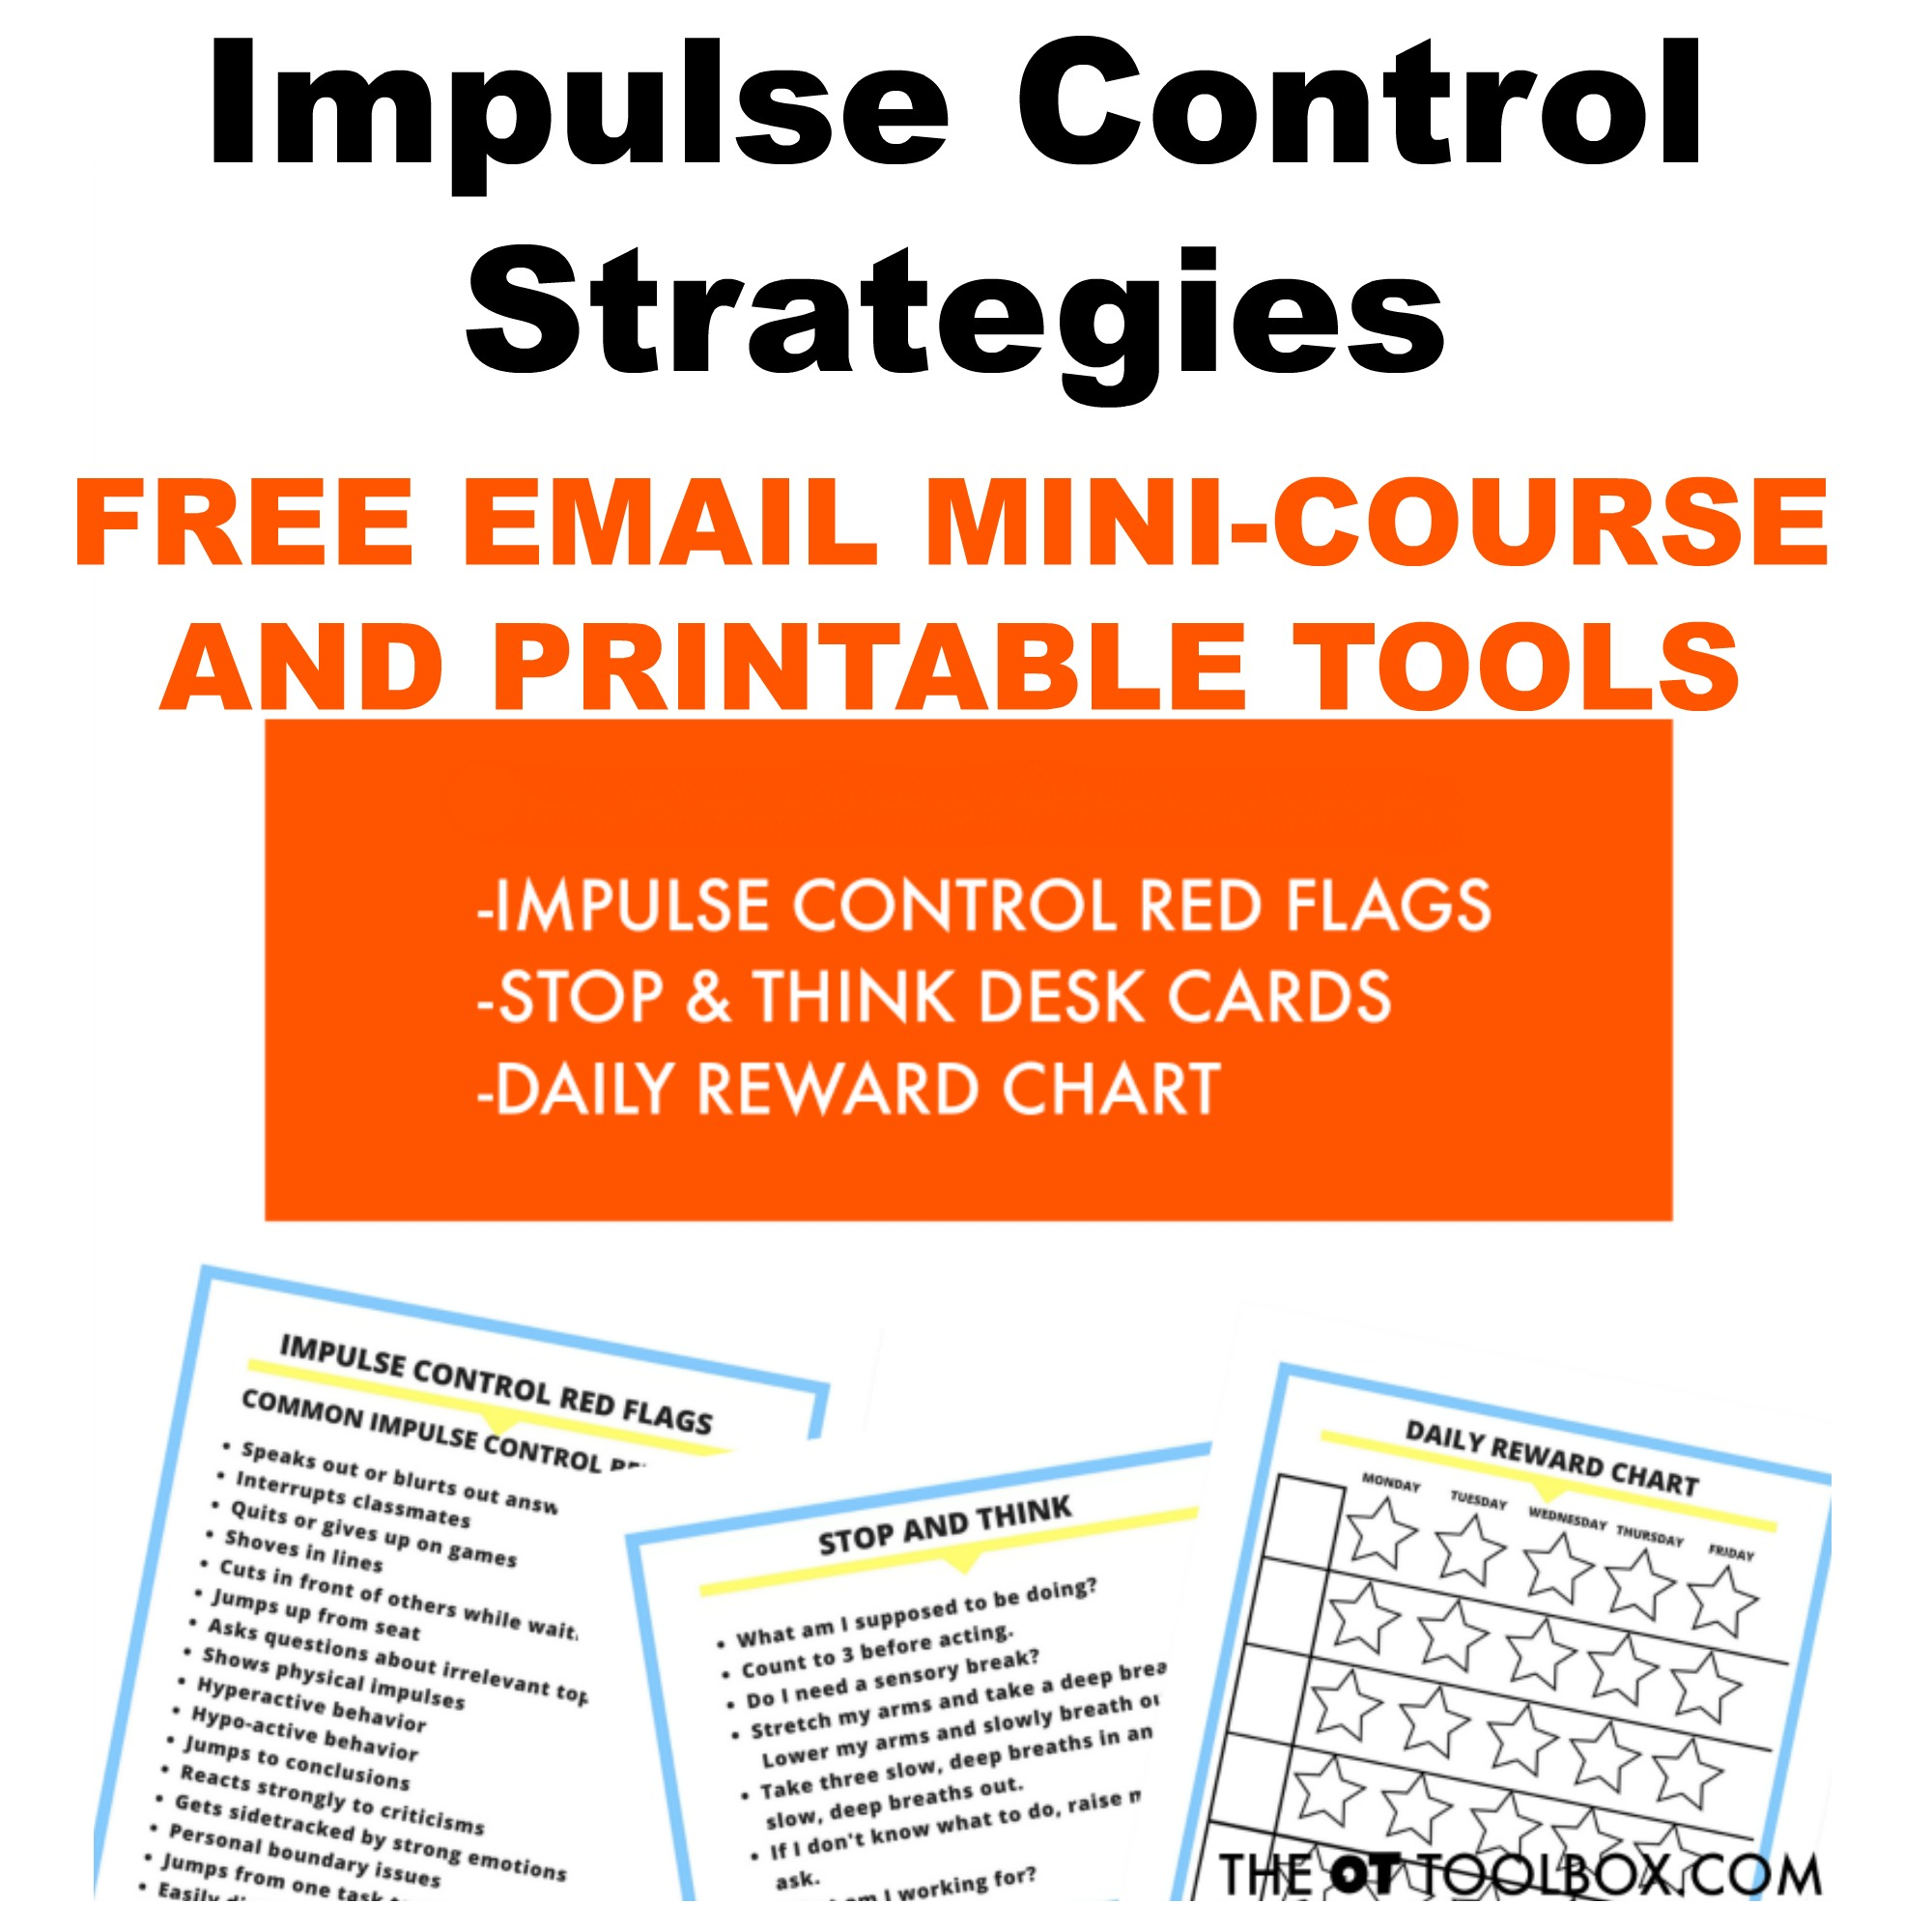 Free Impulse Control Mini-Course